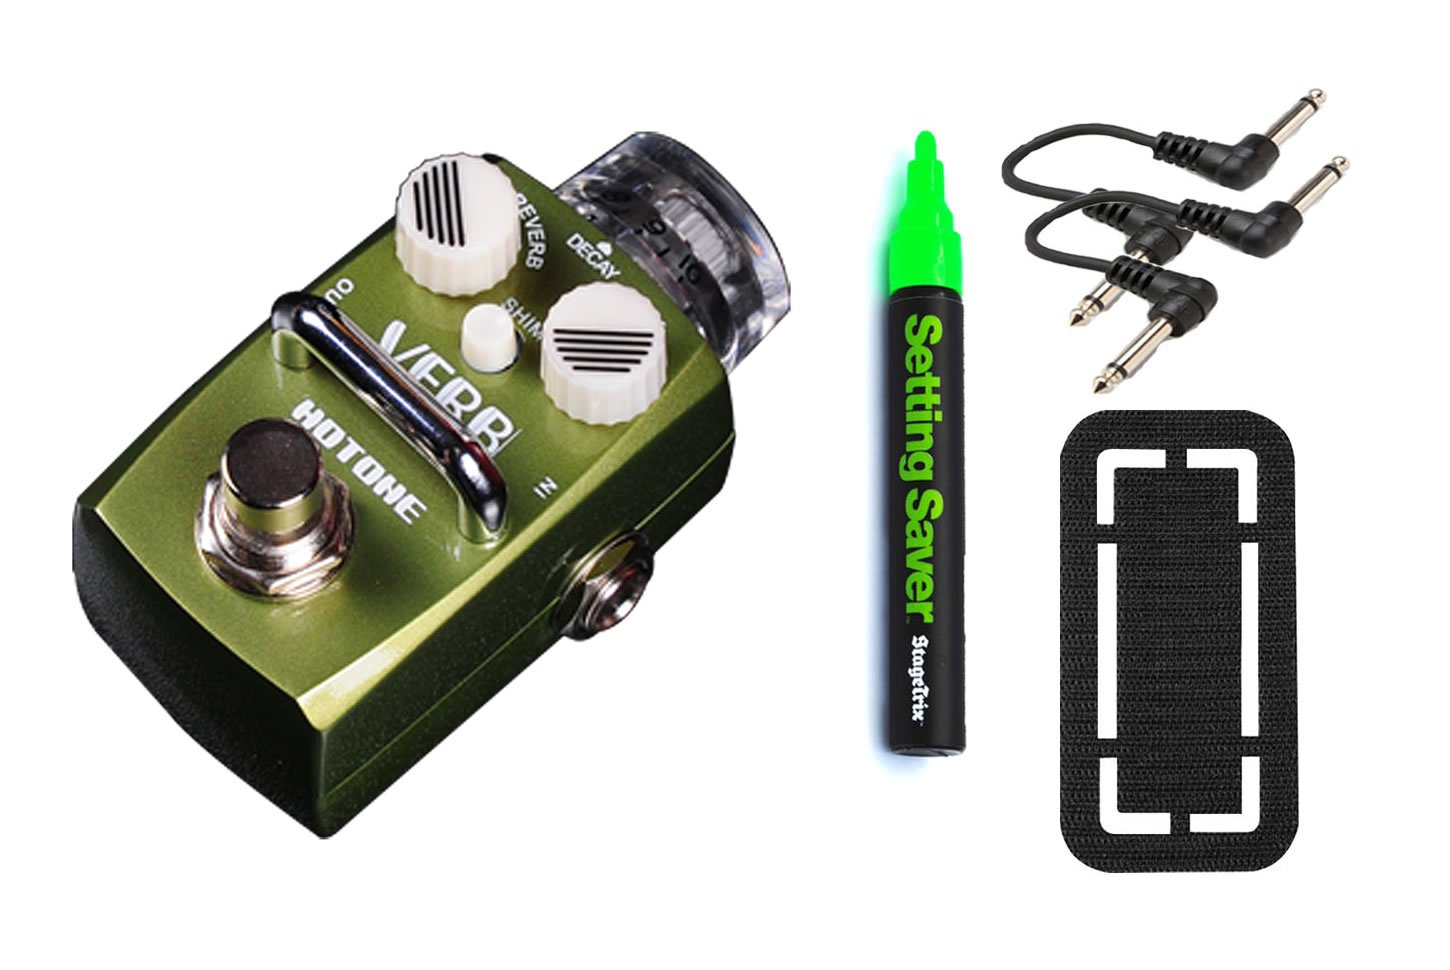 Hotone Skyline Series Stompbox VERB Digital Reverb Pedal Bundle w/ 4 free Items: StageTrix Setting Saver Pen, StageTrix Pedal Fastener, 2x Hosa Patch Cables german verb berlitz handbook